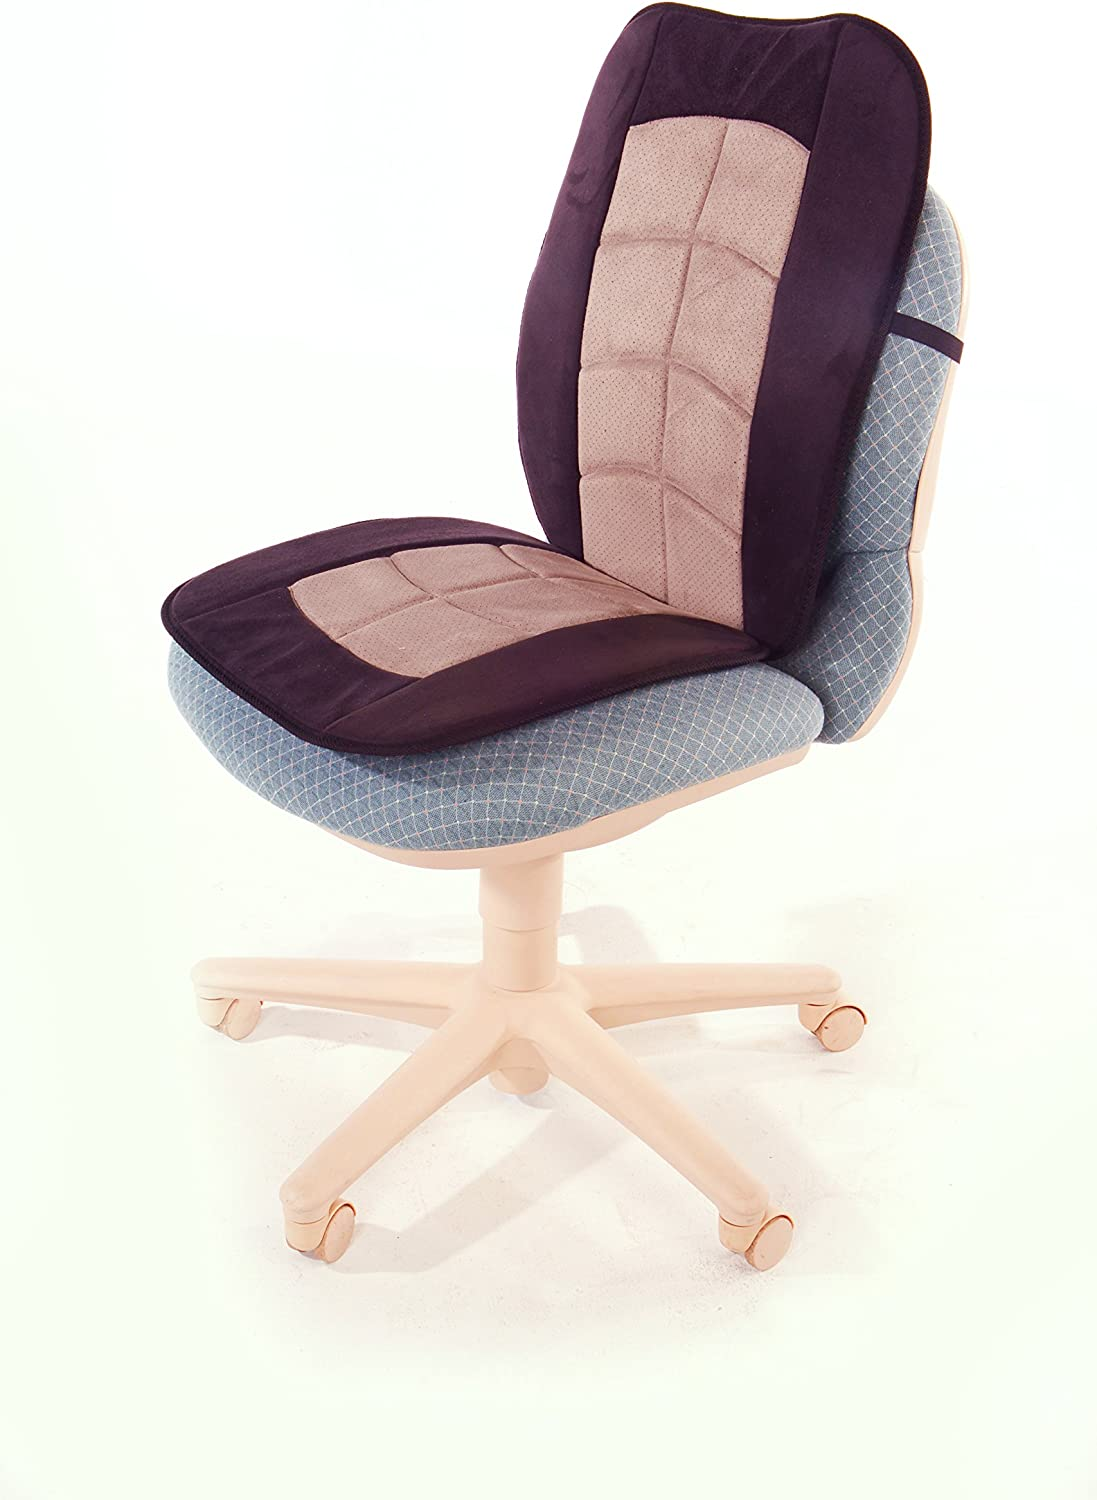 Buy San Francisco Mall From TV Lumbar Direct sale of manufacturer Support Memory Seat Foam for Cushion Off Car